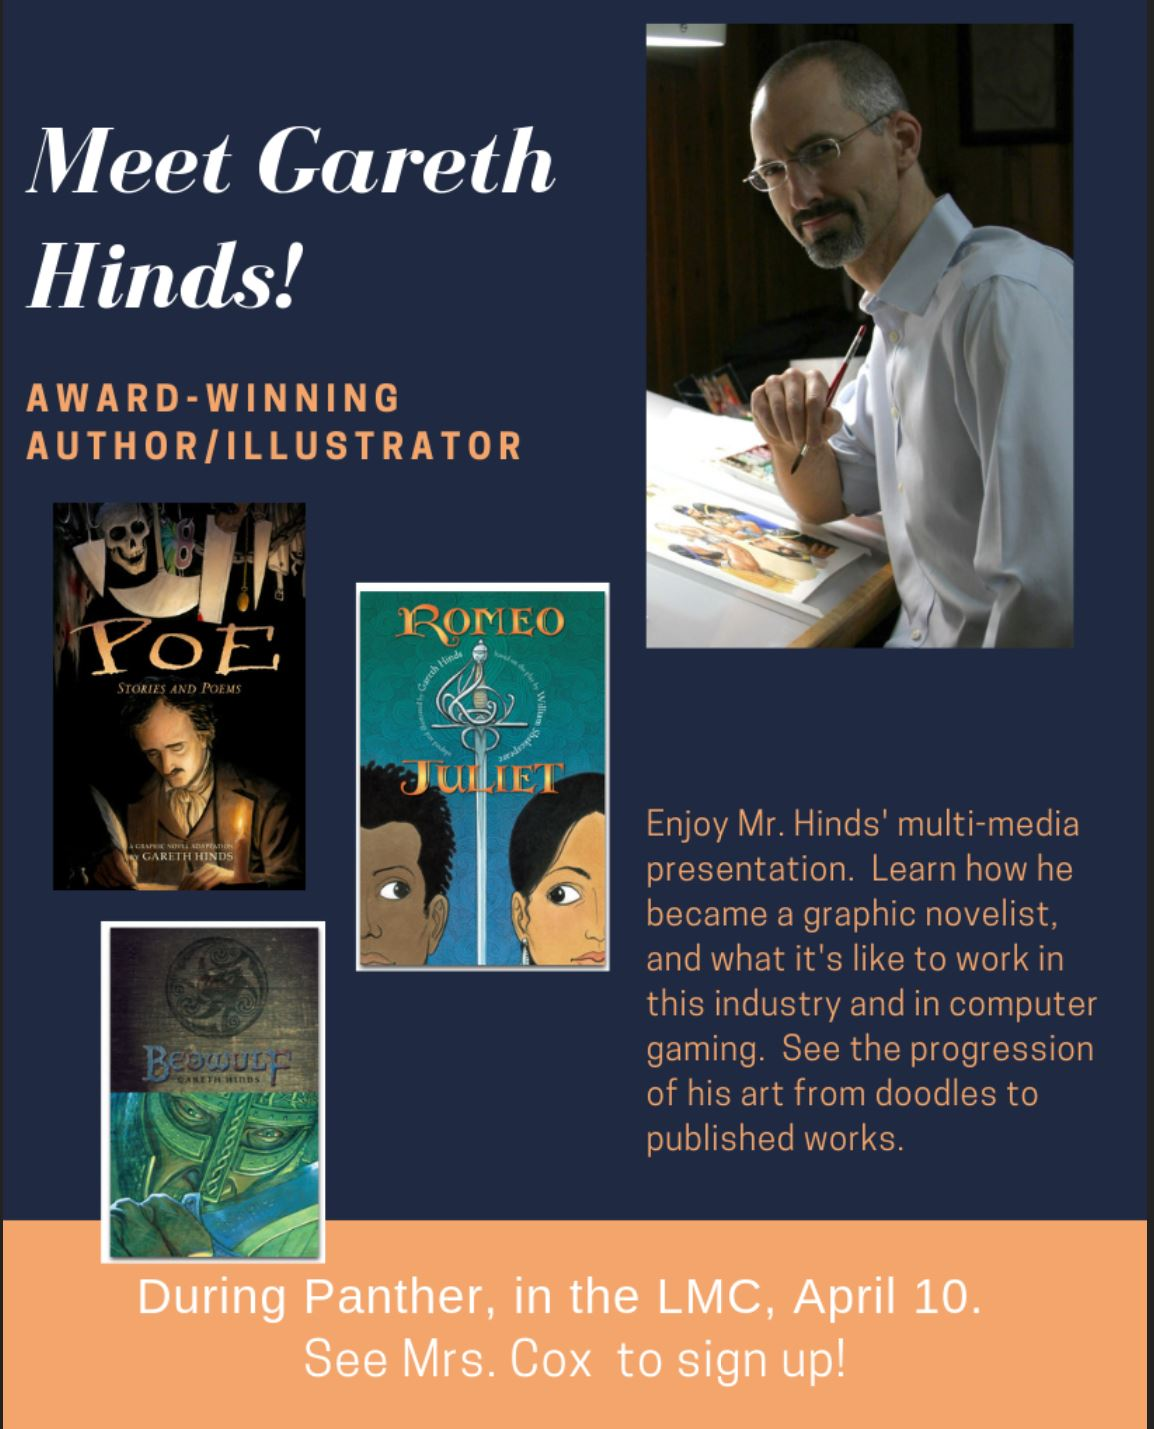 Meet author Gareth Hinds